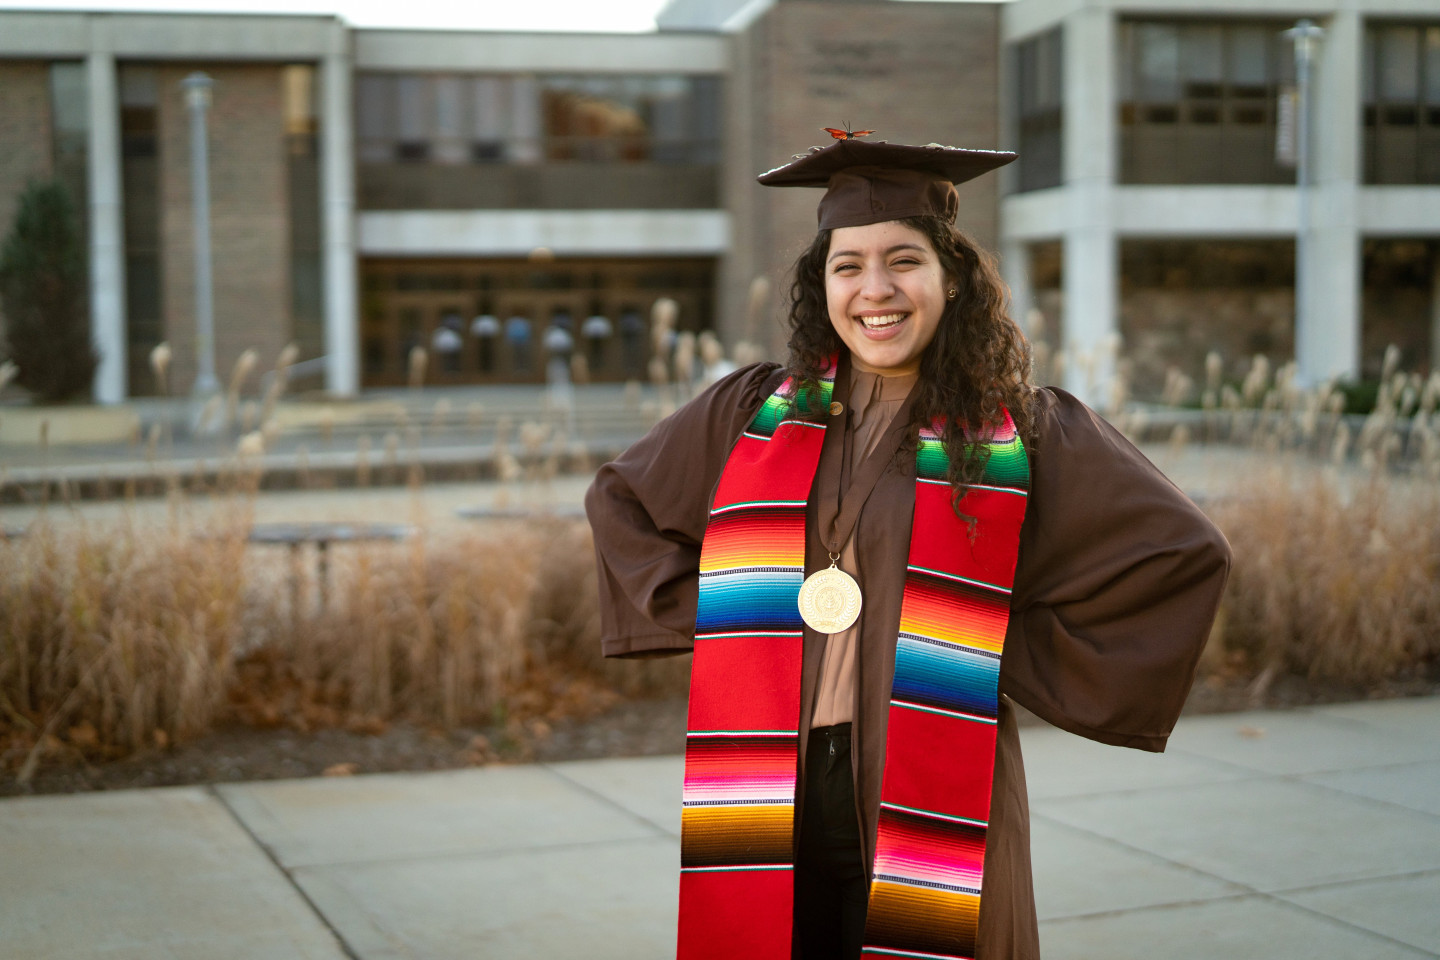 A photo of Valeria Marin in her graduation cap and gown.